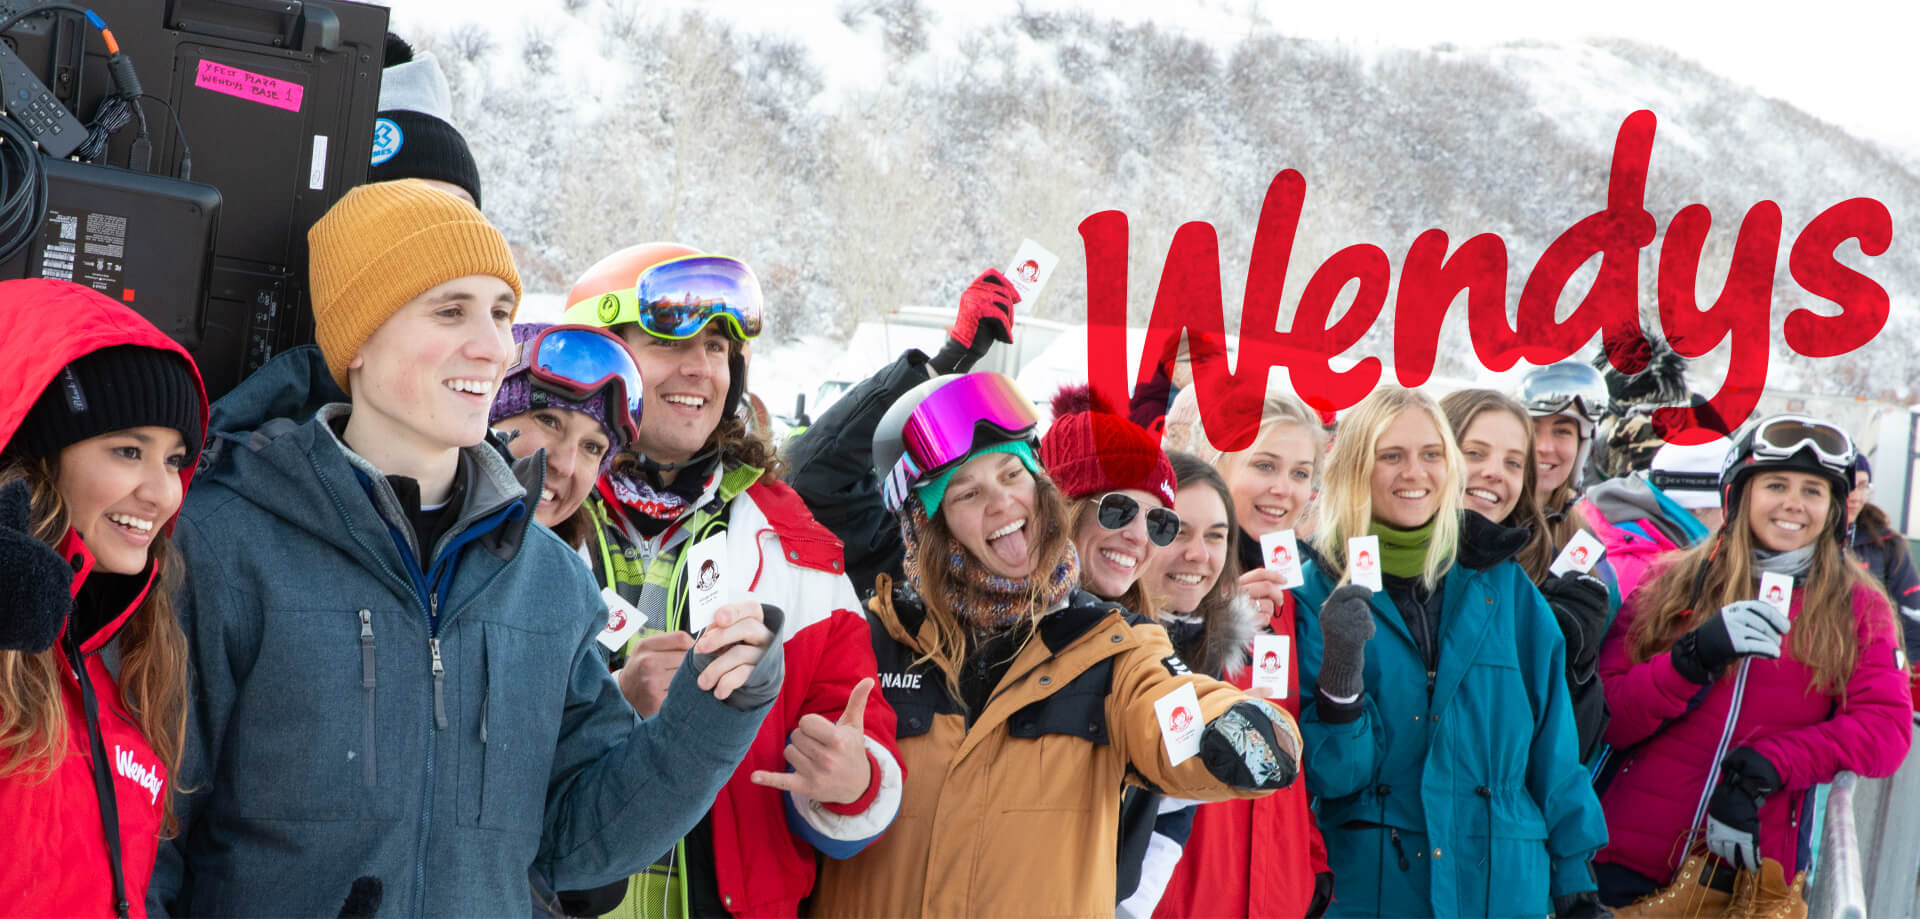 Skiers in line for the Wendy's pop-up restaurant created by our experiential marketing team.